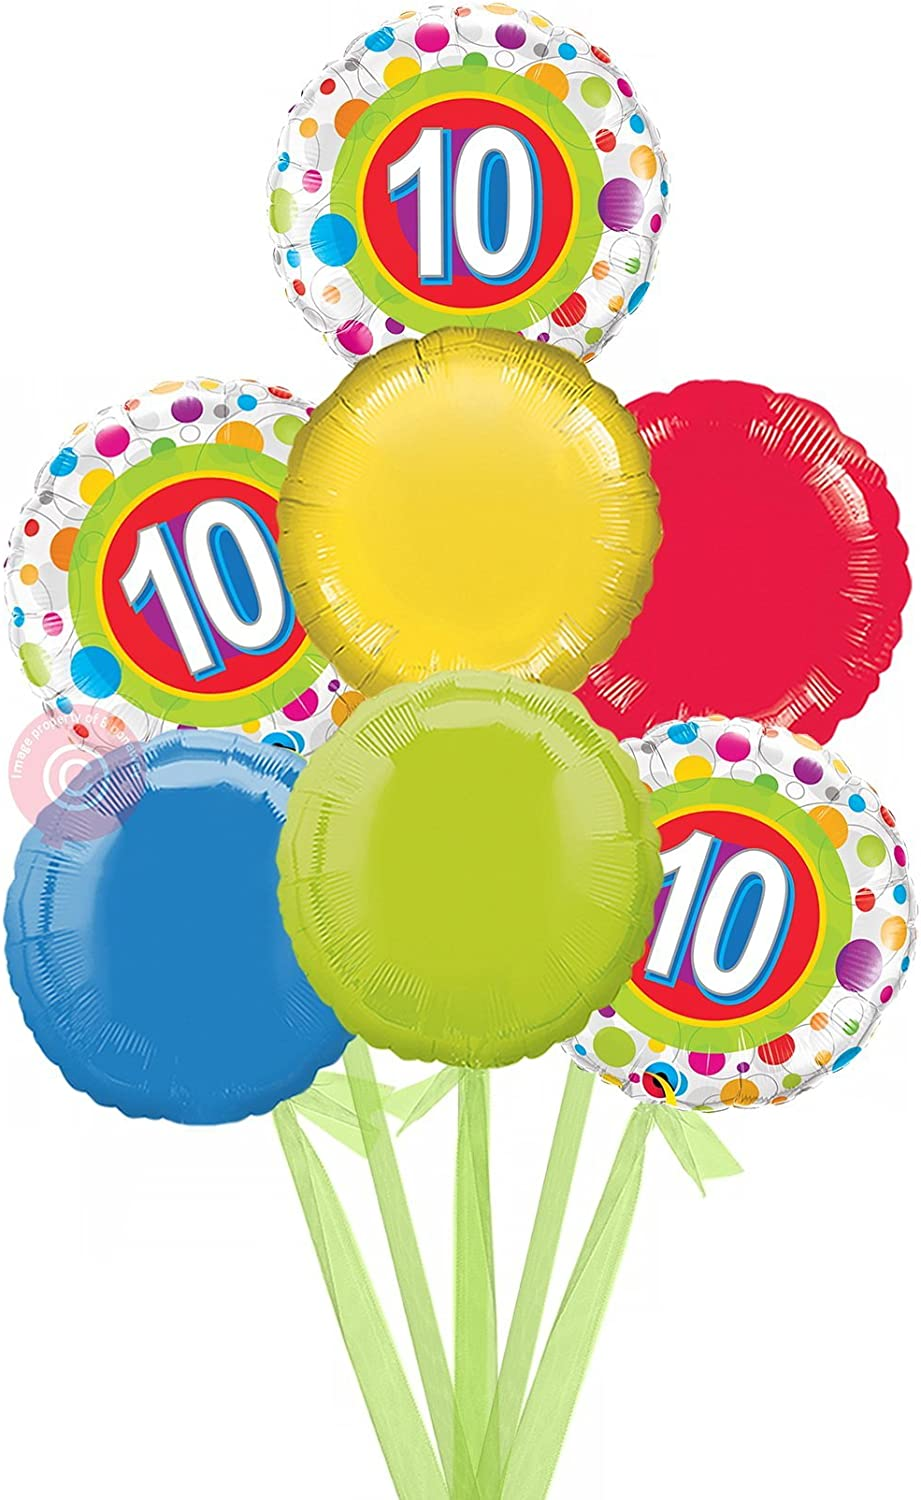 Num 10 Colourful Dots  Inflated Birthday Helium Balloon Delivered in a Box  Bigger Bouquet  7 Balloons  Bloonaway